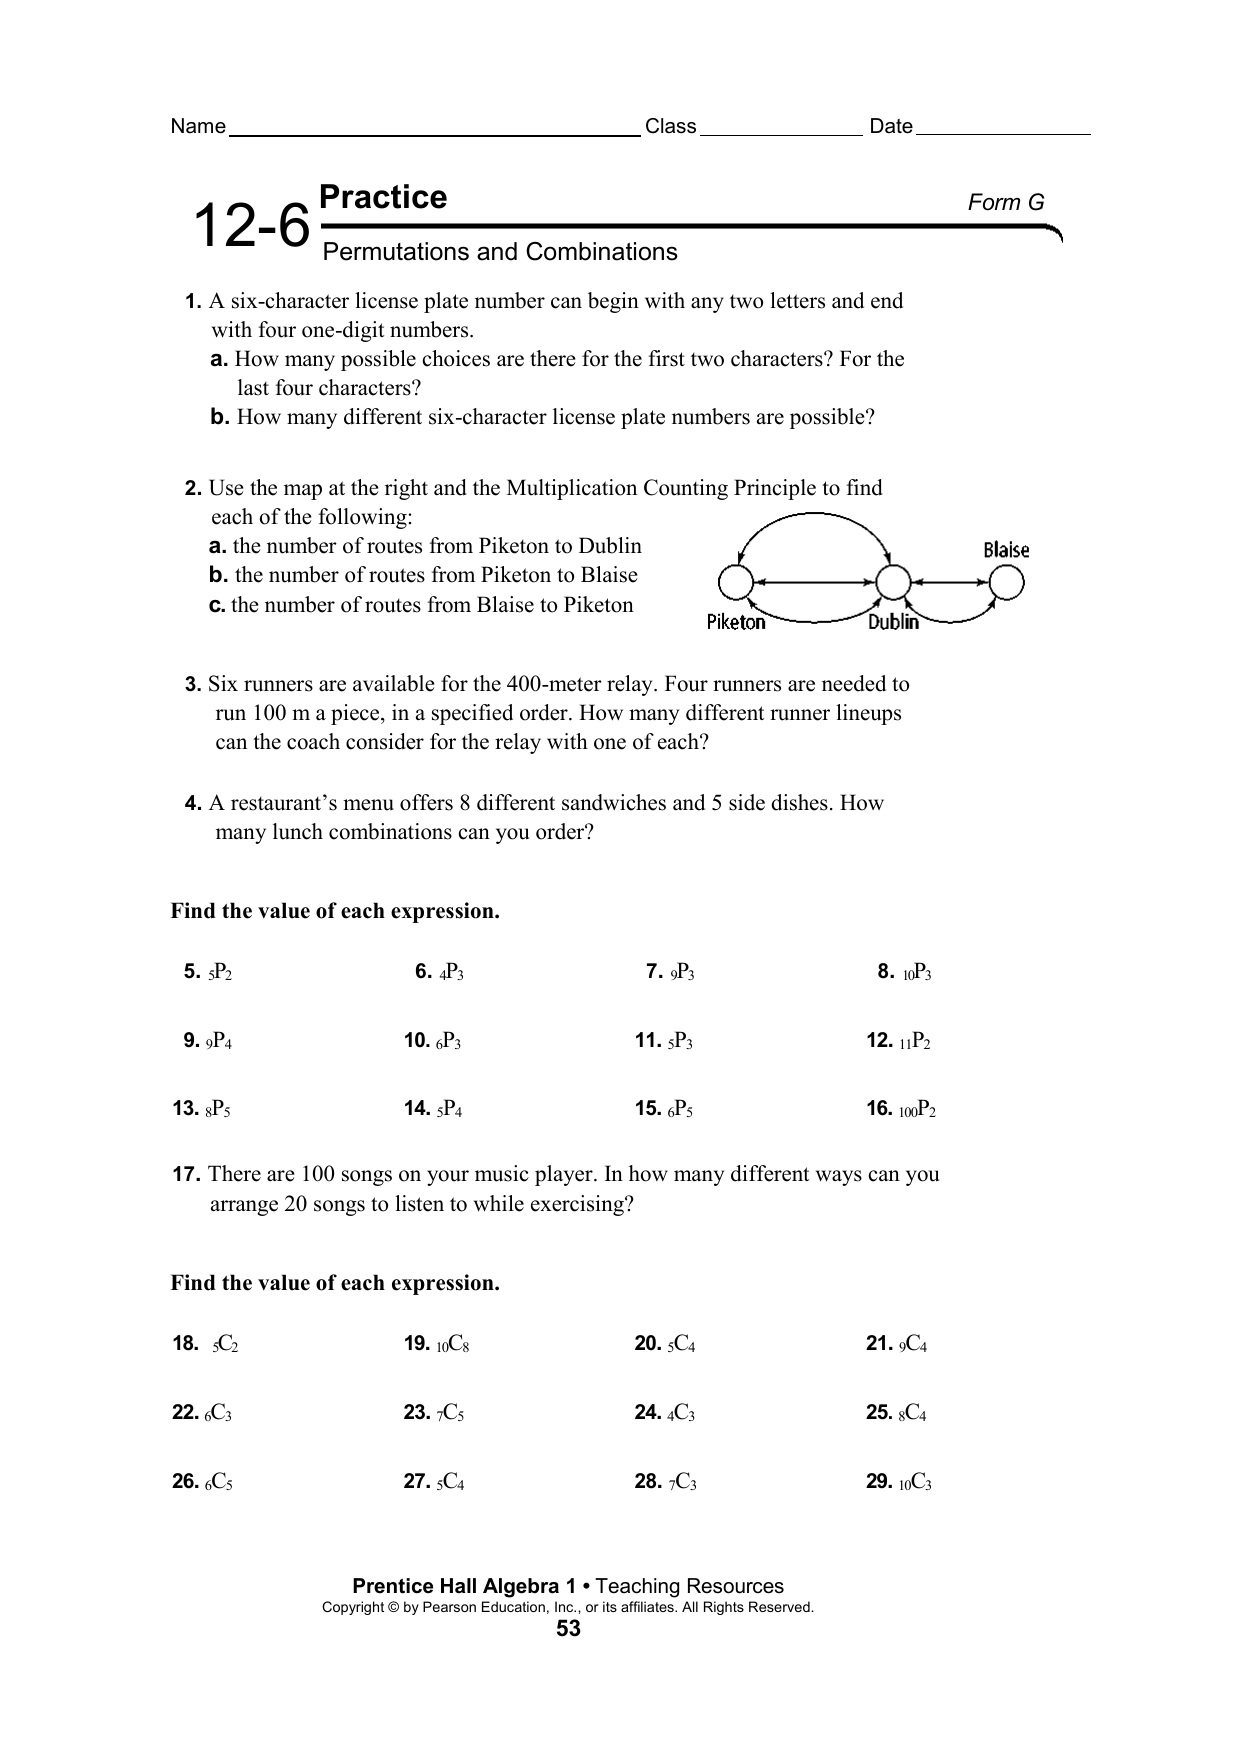 Permutations And Combinations Worksheet With Answers Doc